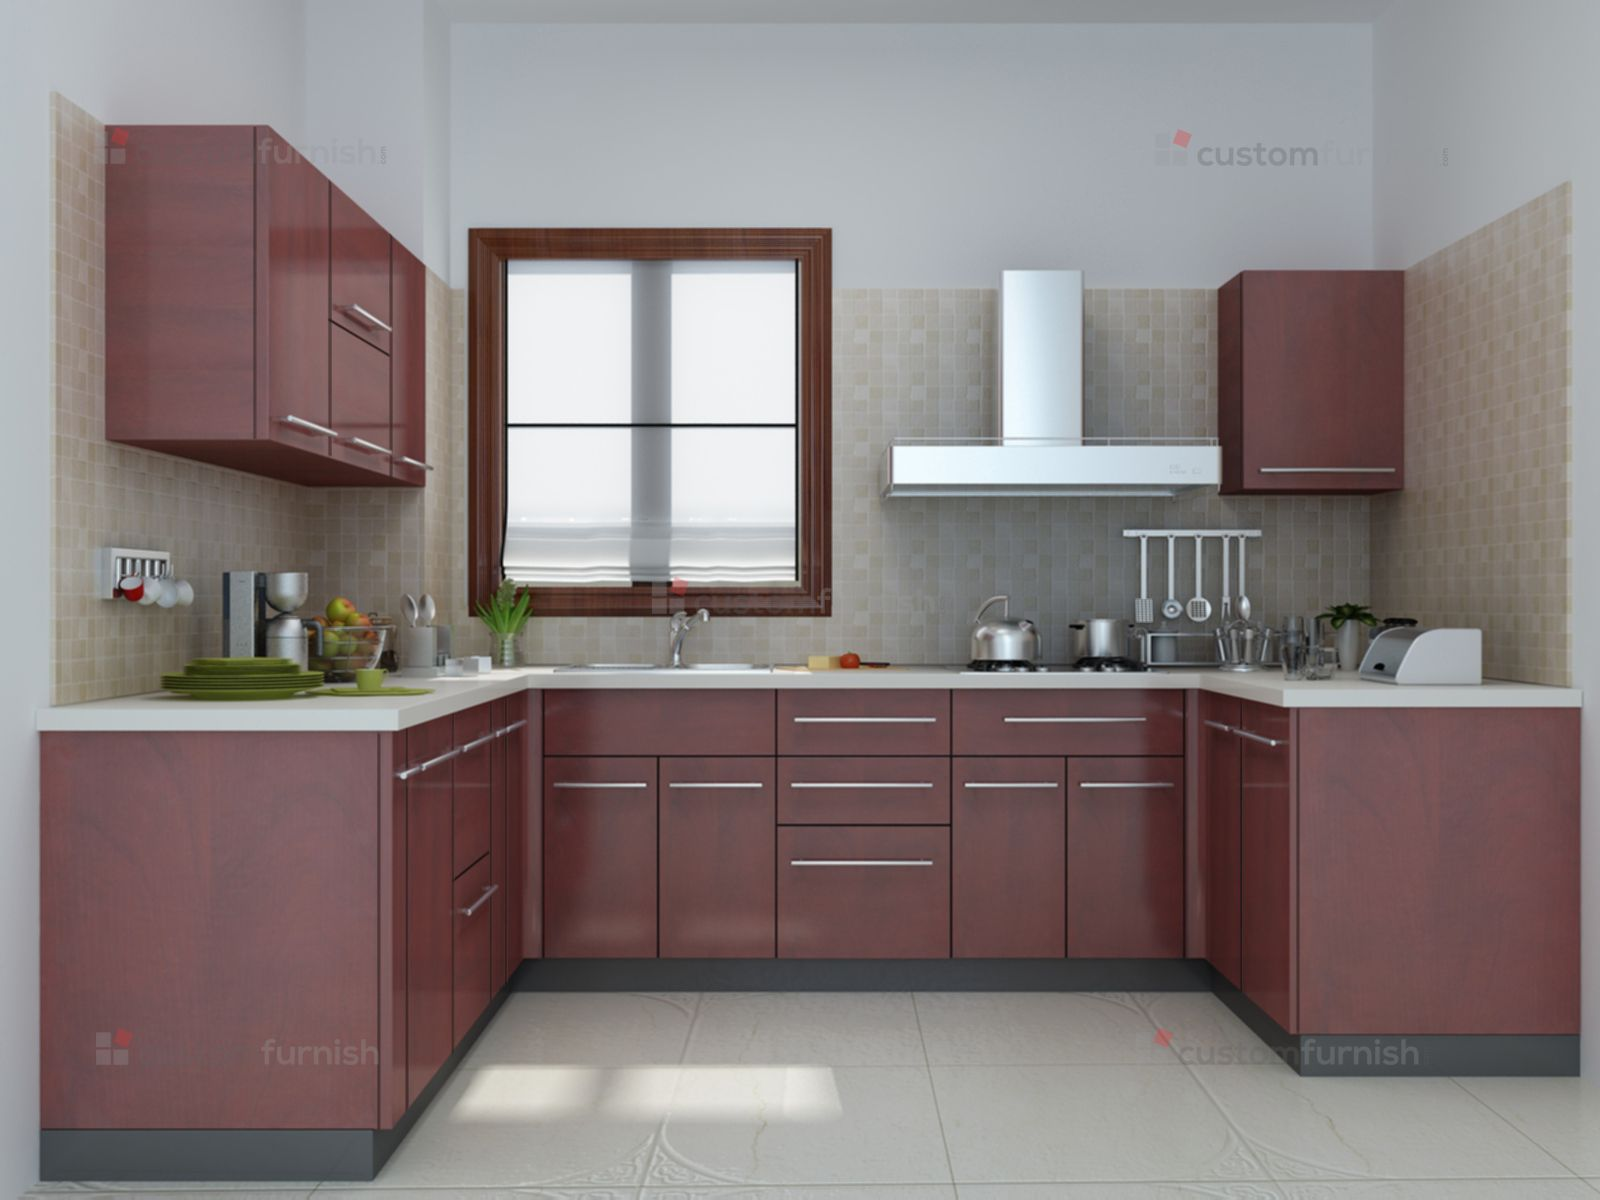 U Shaped Modular Kitchen Design U Shaped Modular Kitchen Designs In 2019 Kitchen Design